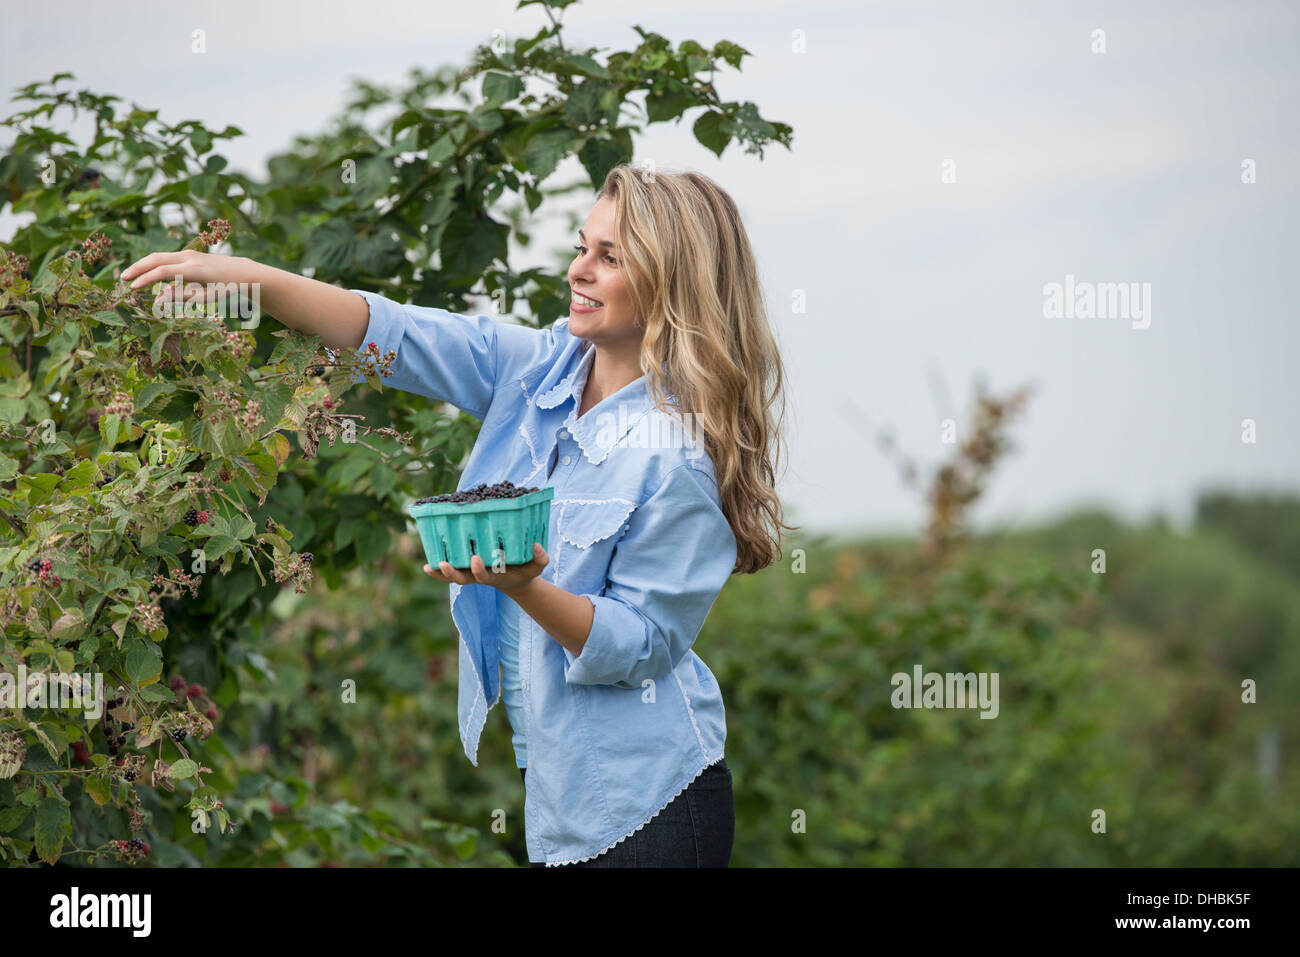 A woman reaching up to pick berries from a blackberry bush on an organic fruit farm. - Stock Image